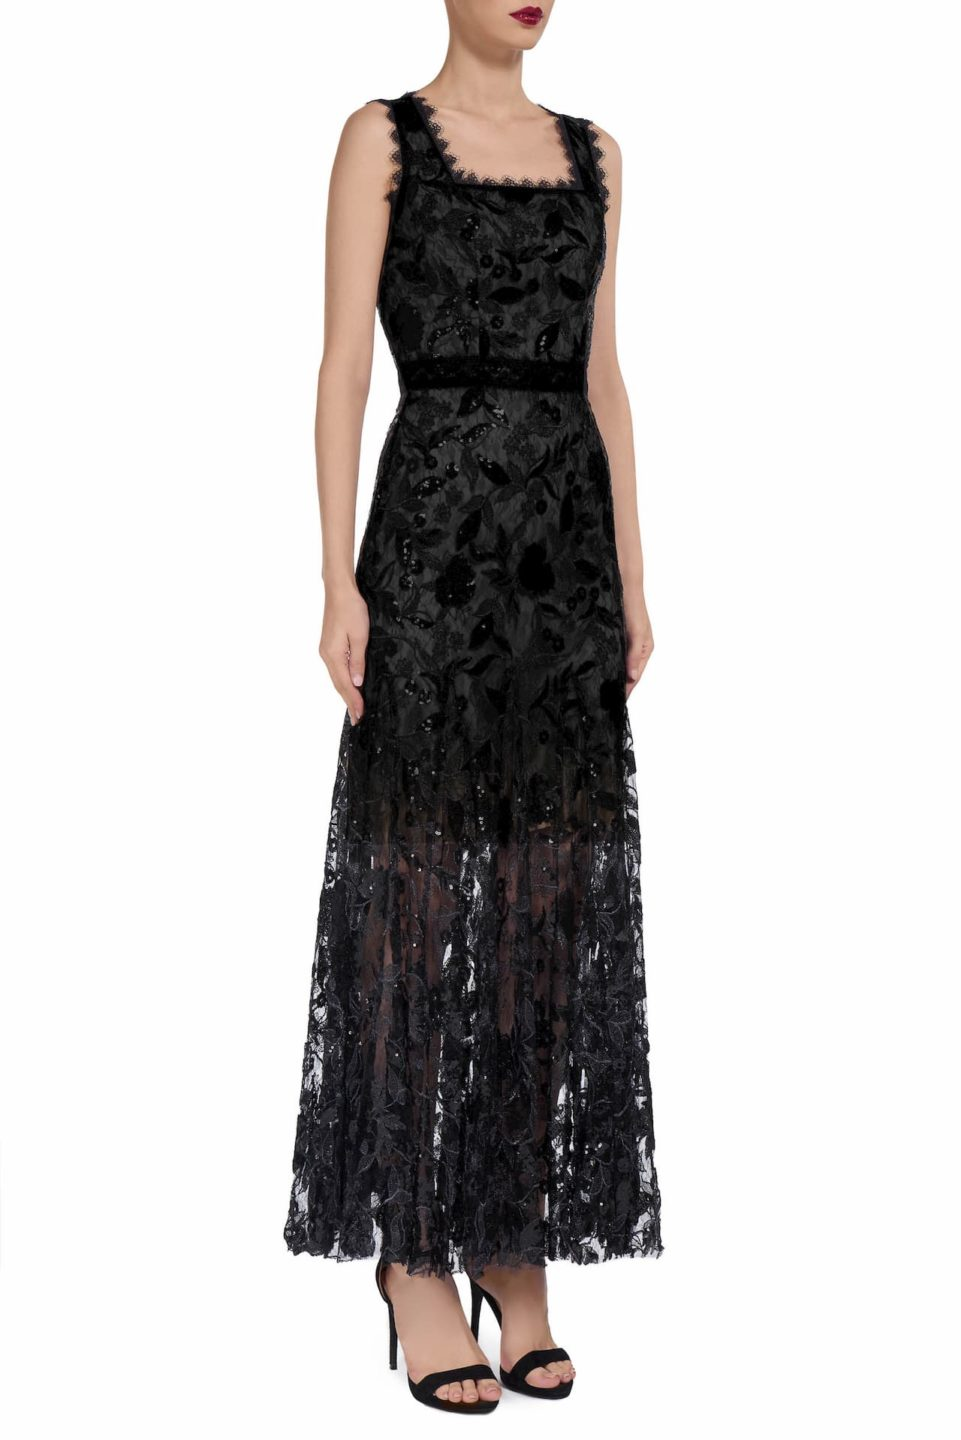 Lindra PS1950 black floral sequin dress with square neckline